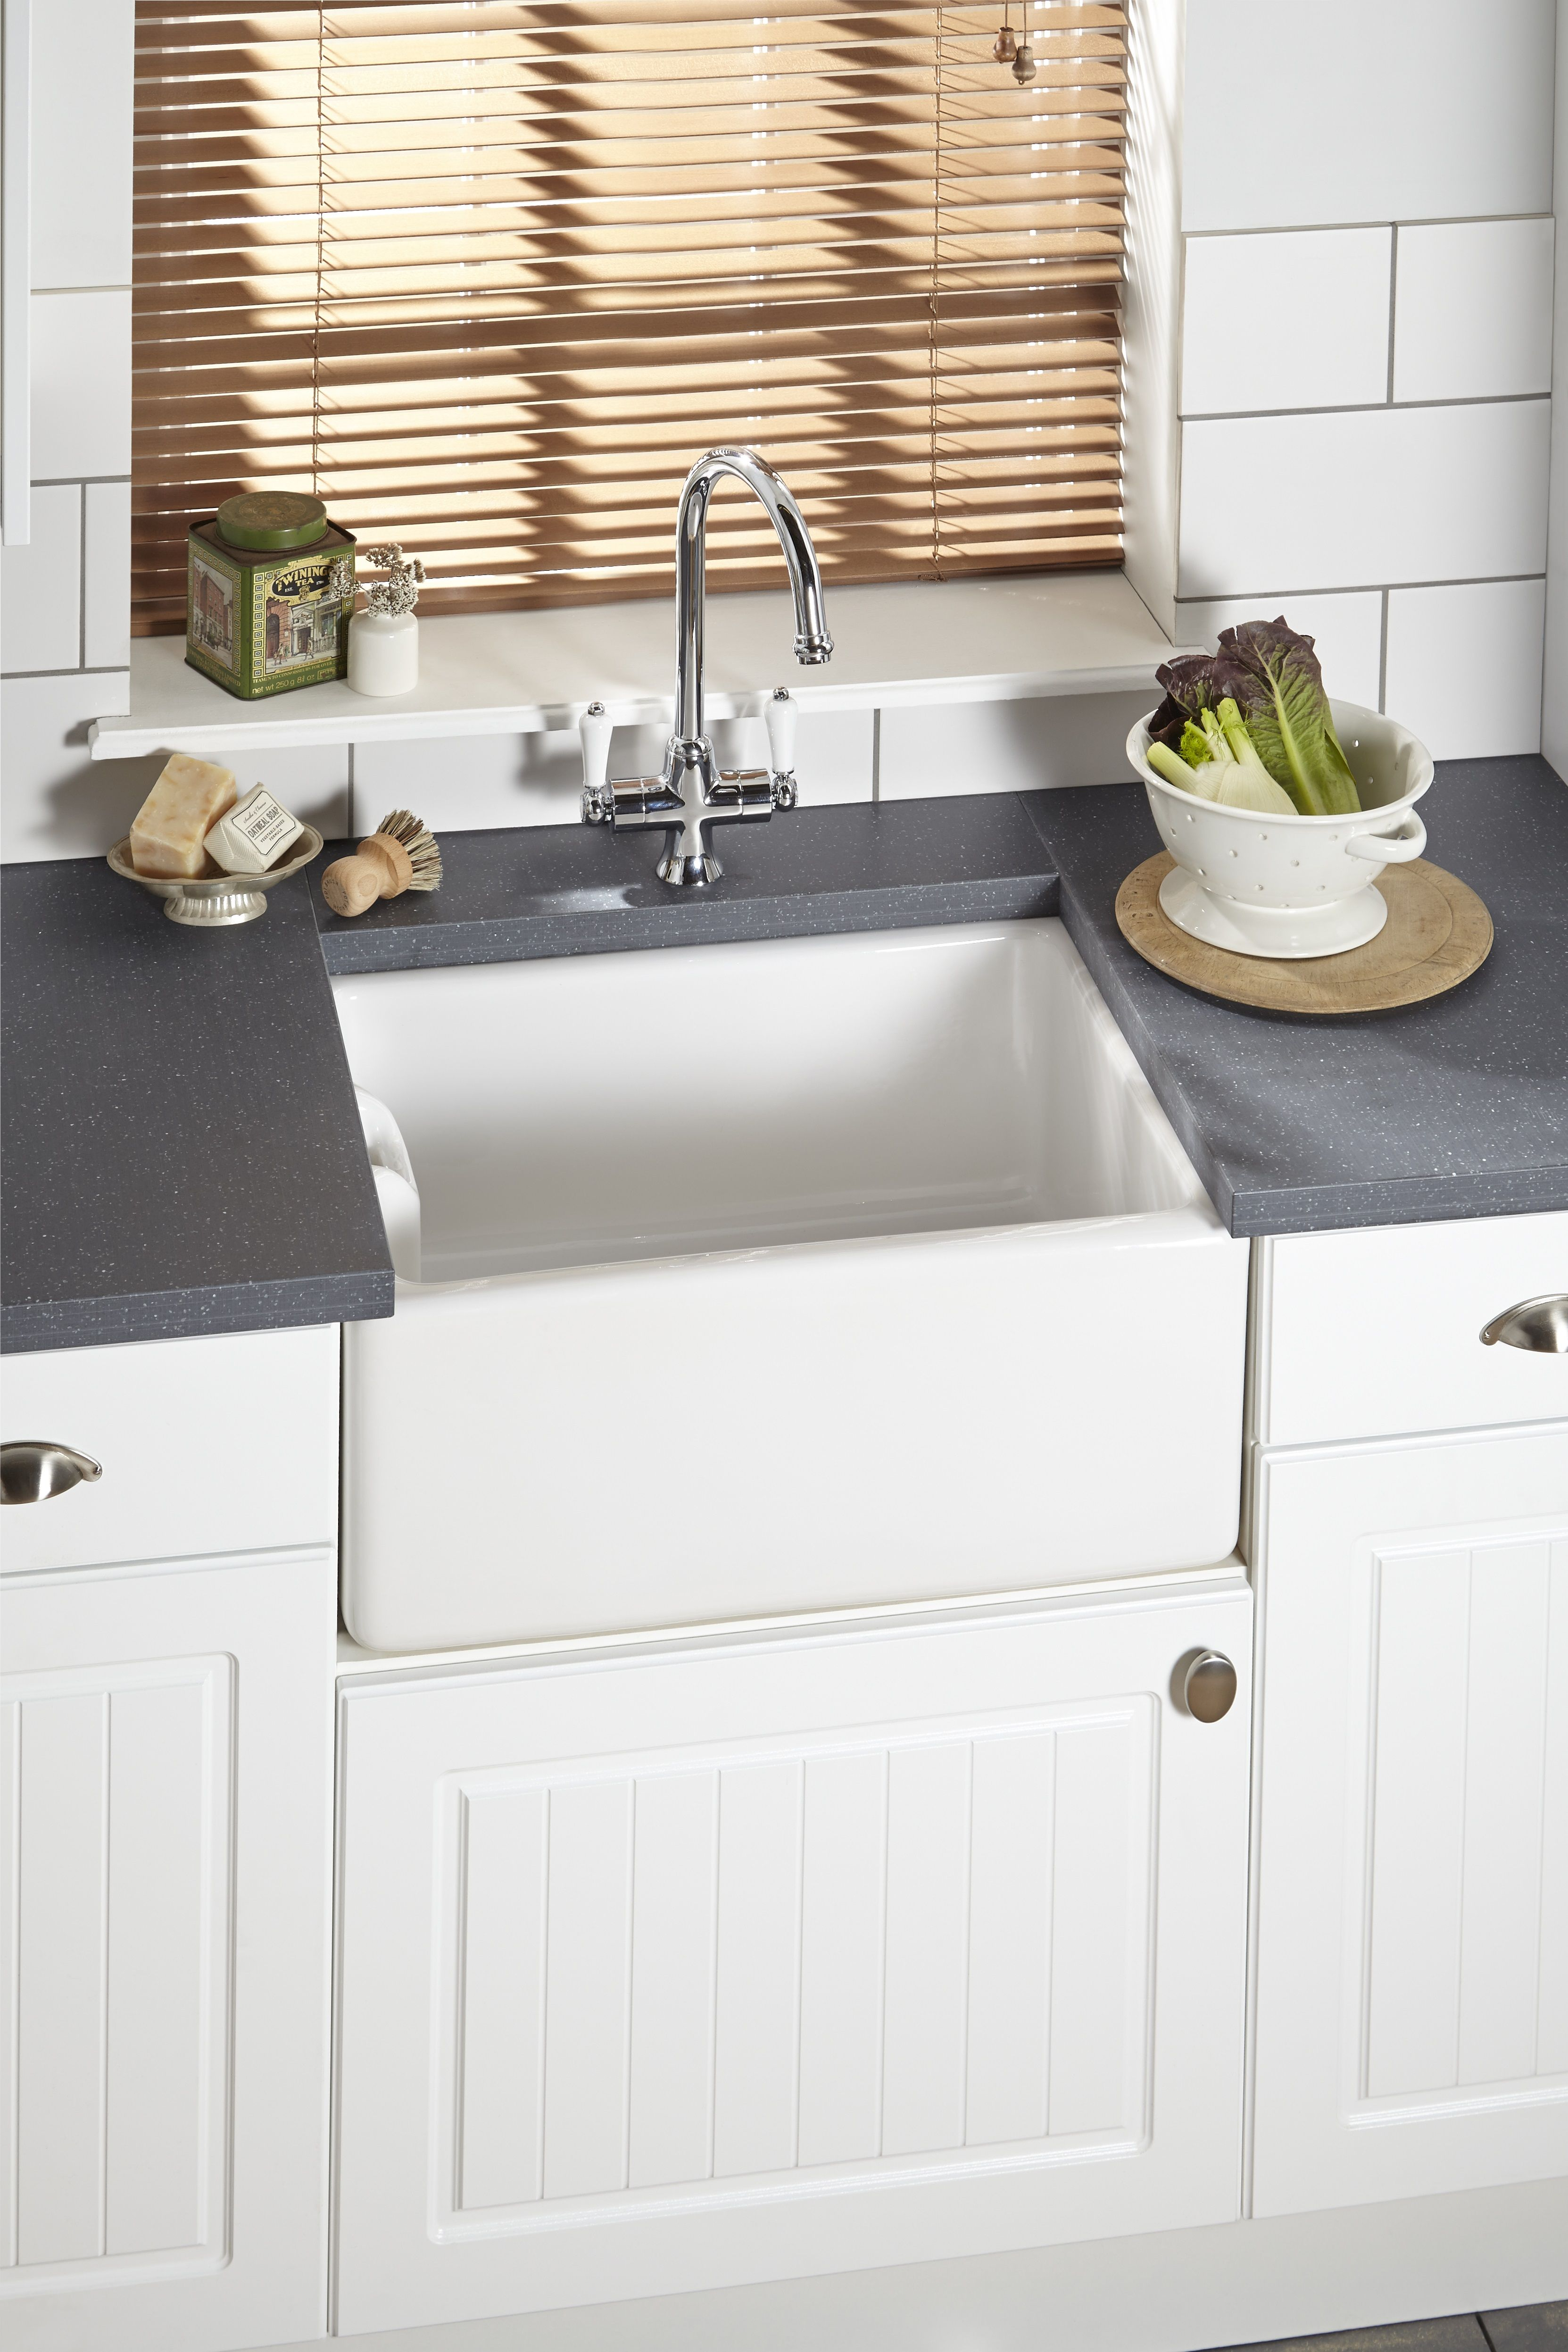 For show stopping sinks with maximum resistance and elegant design ...